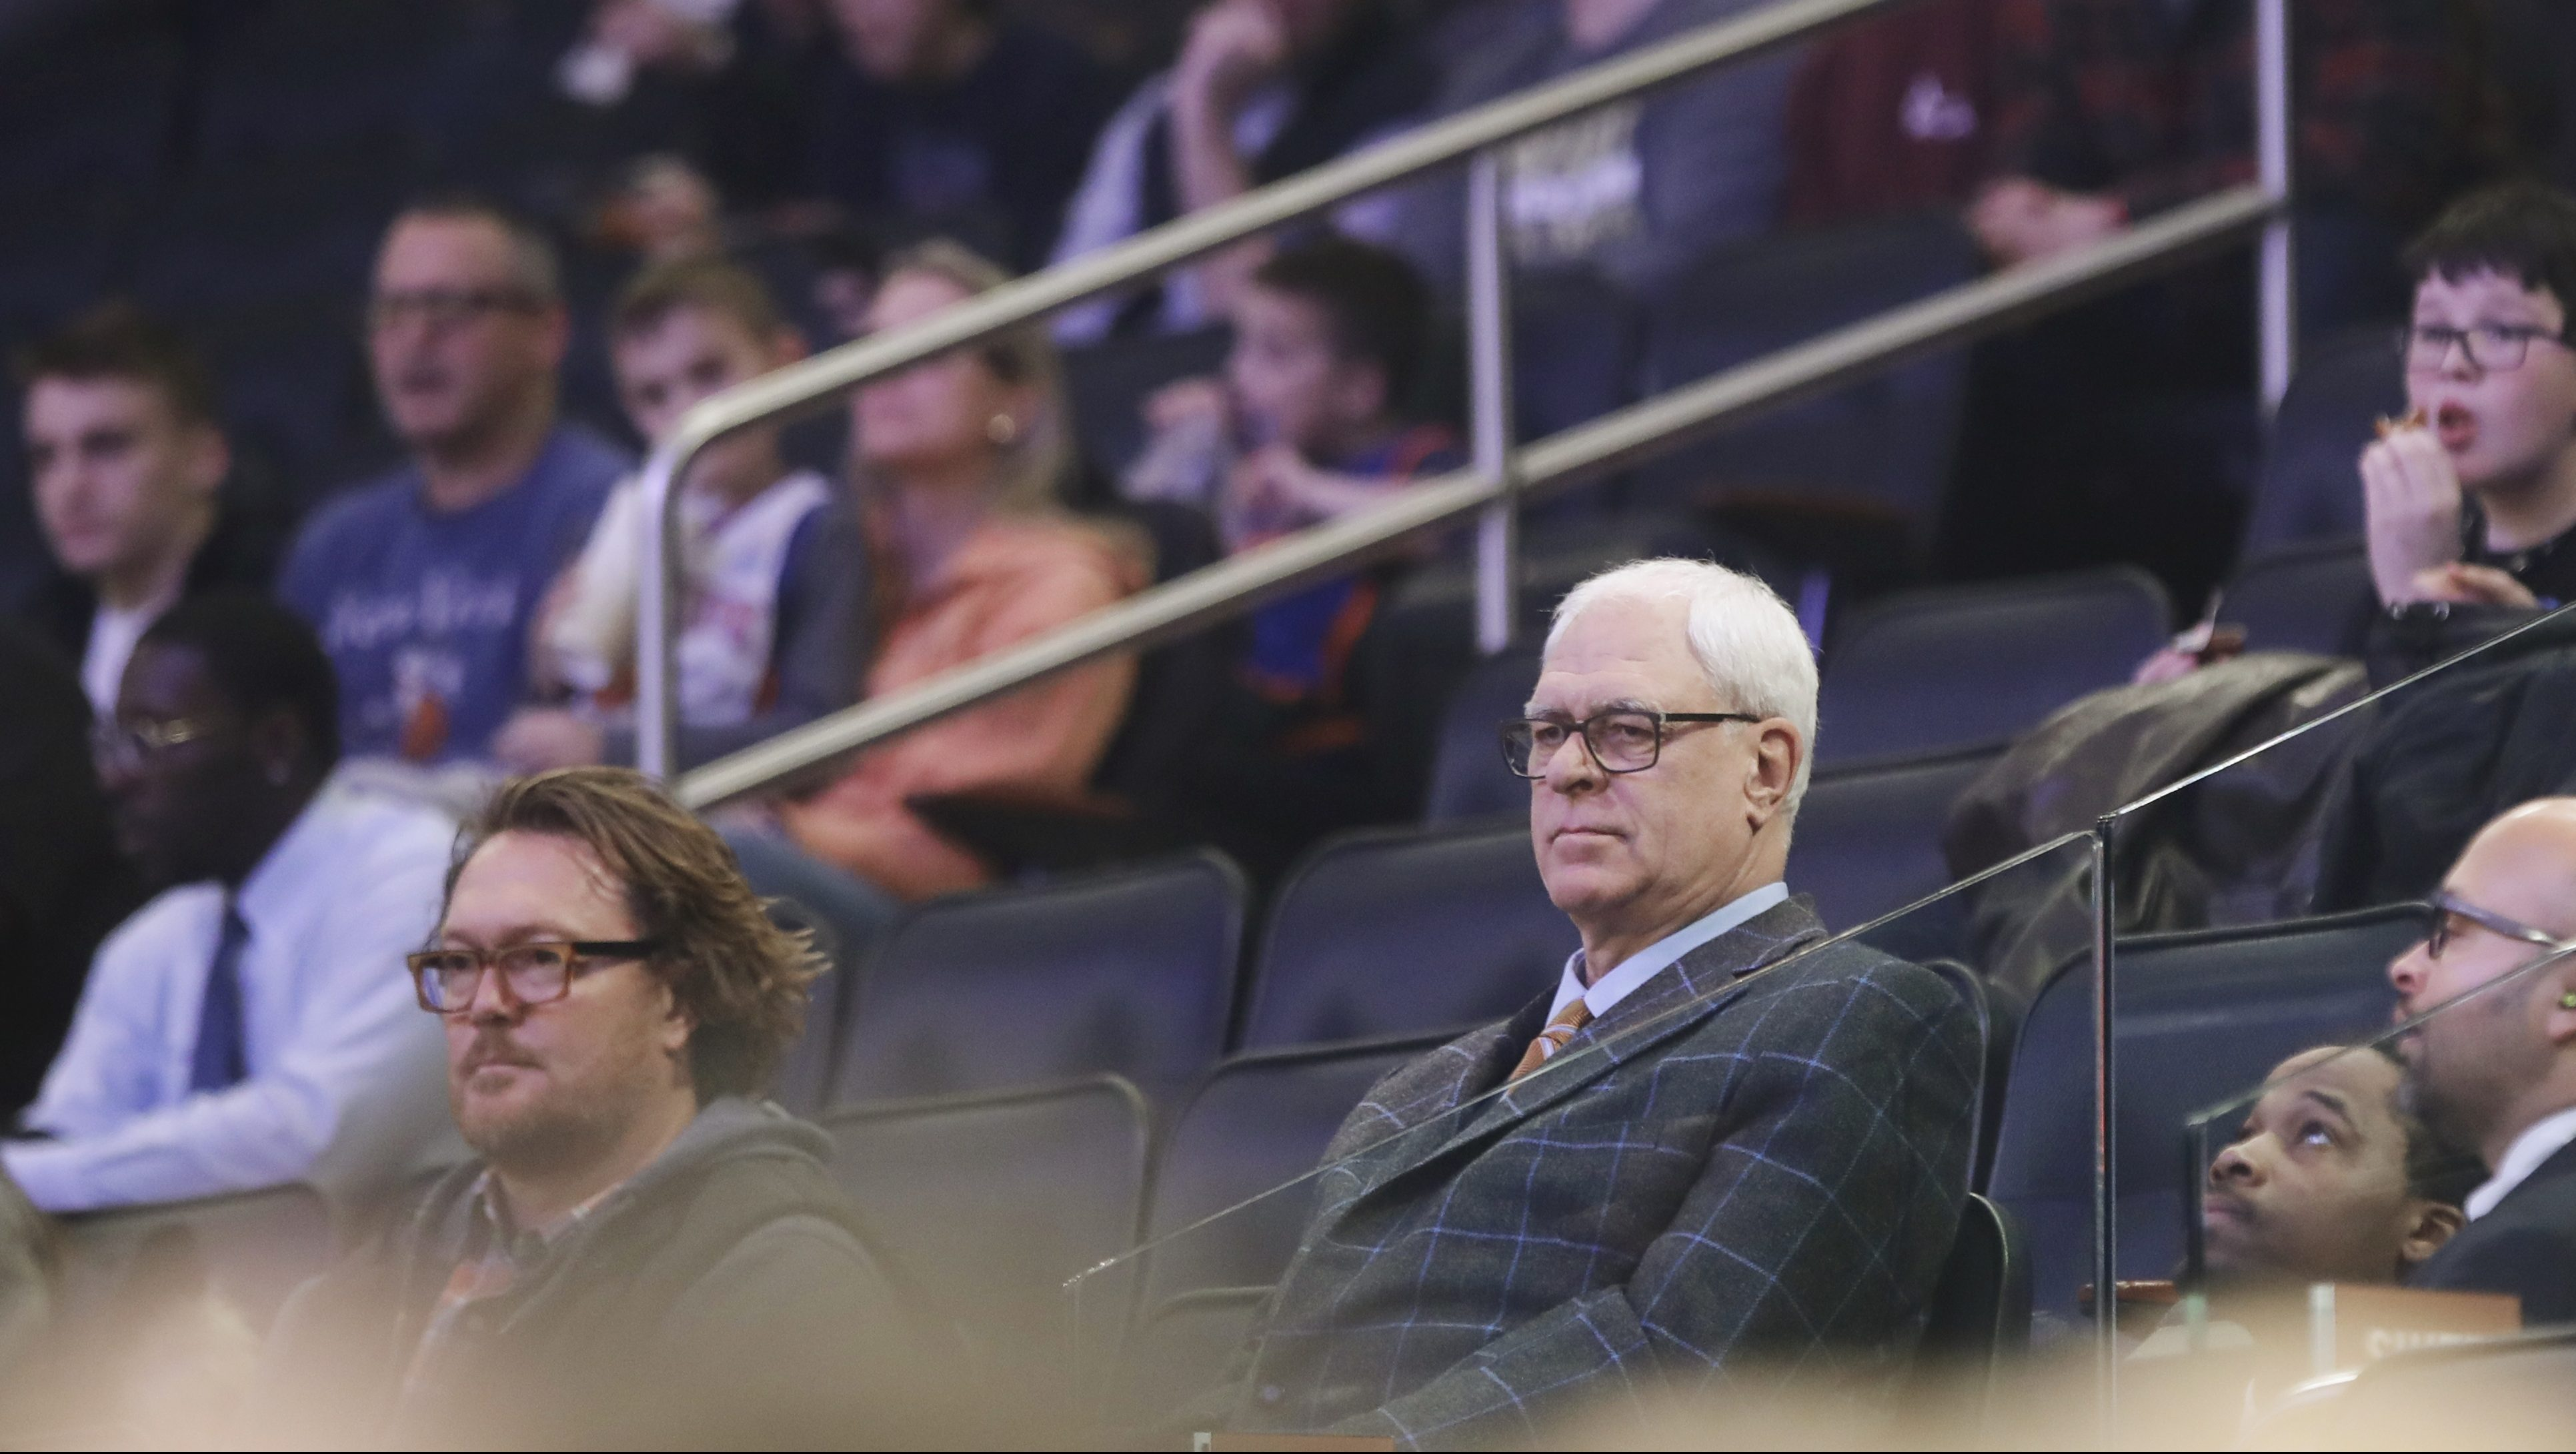 Phil Jackson's second act as team president was a disaster